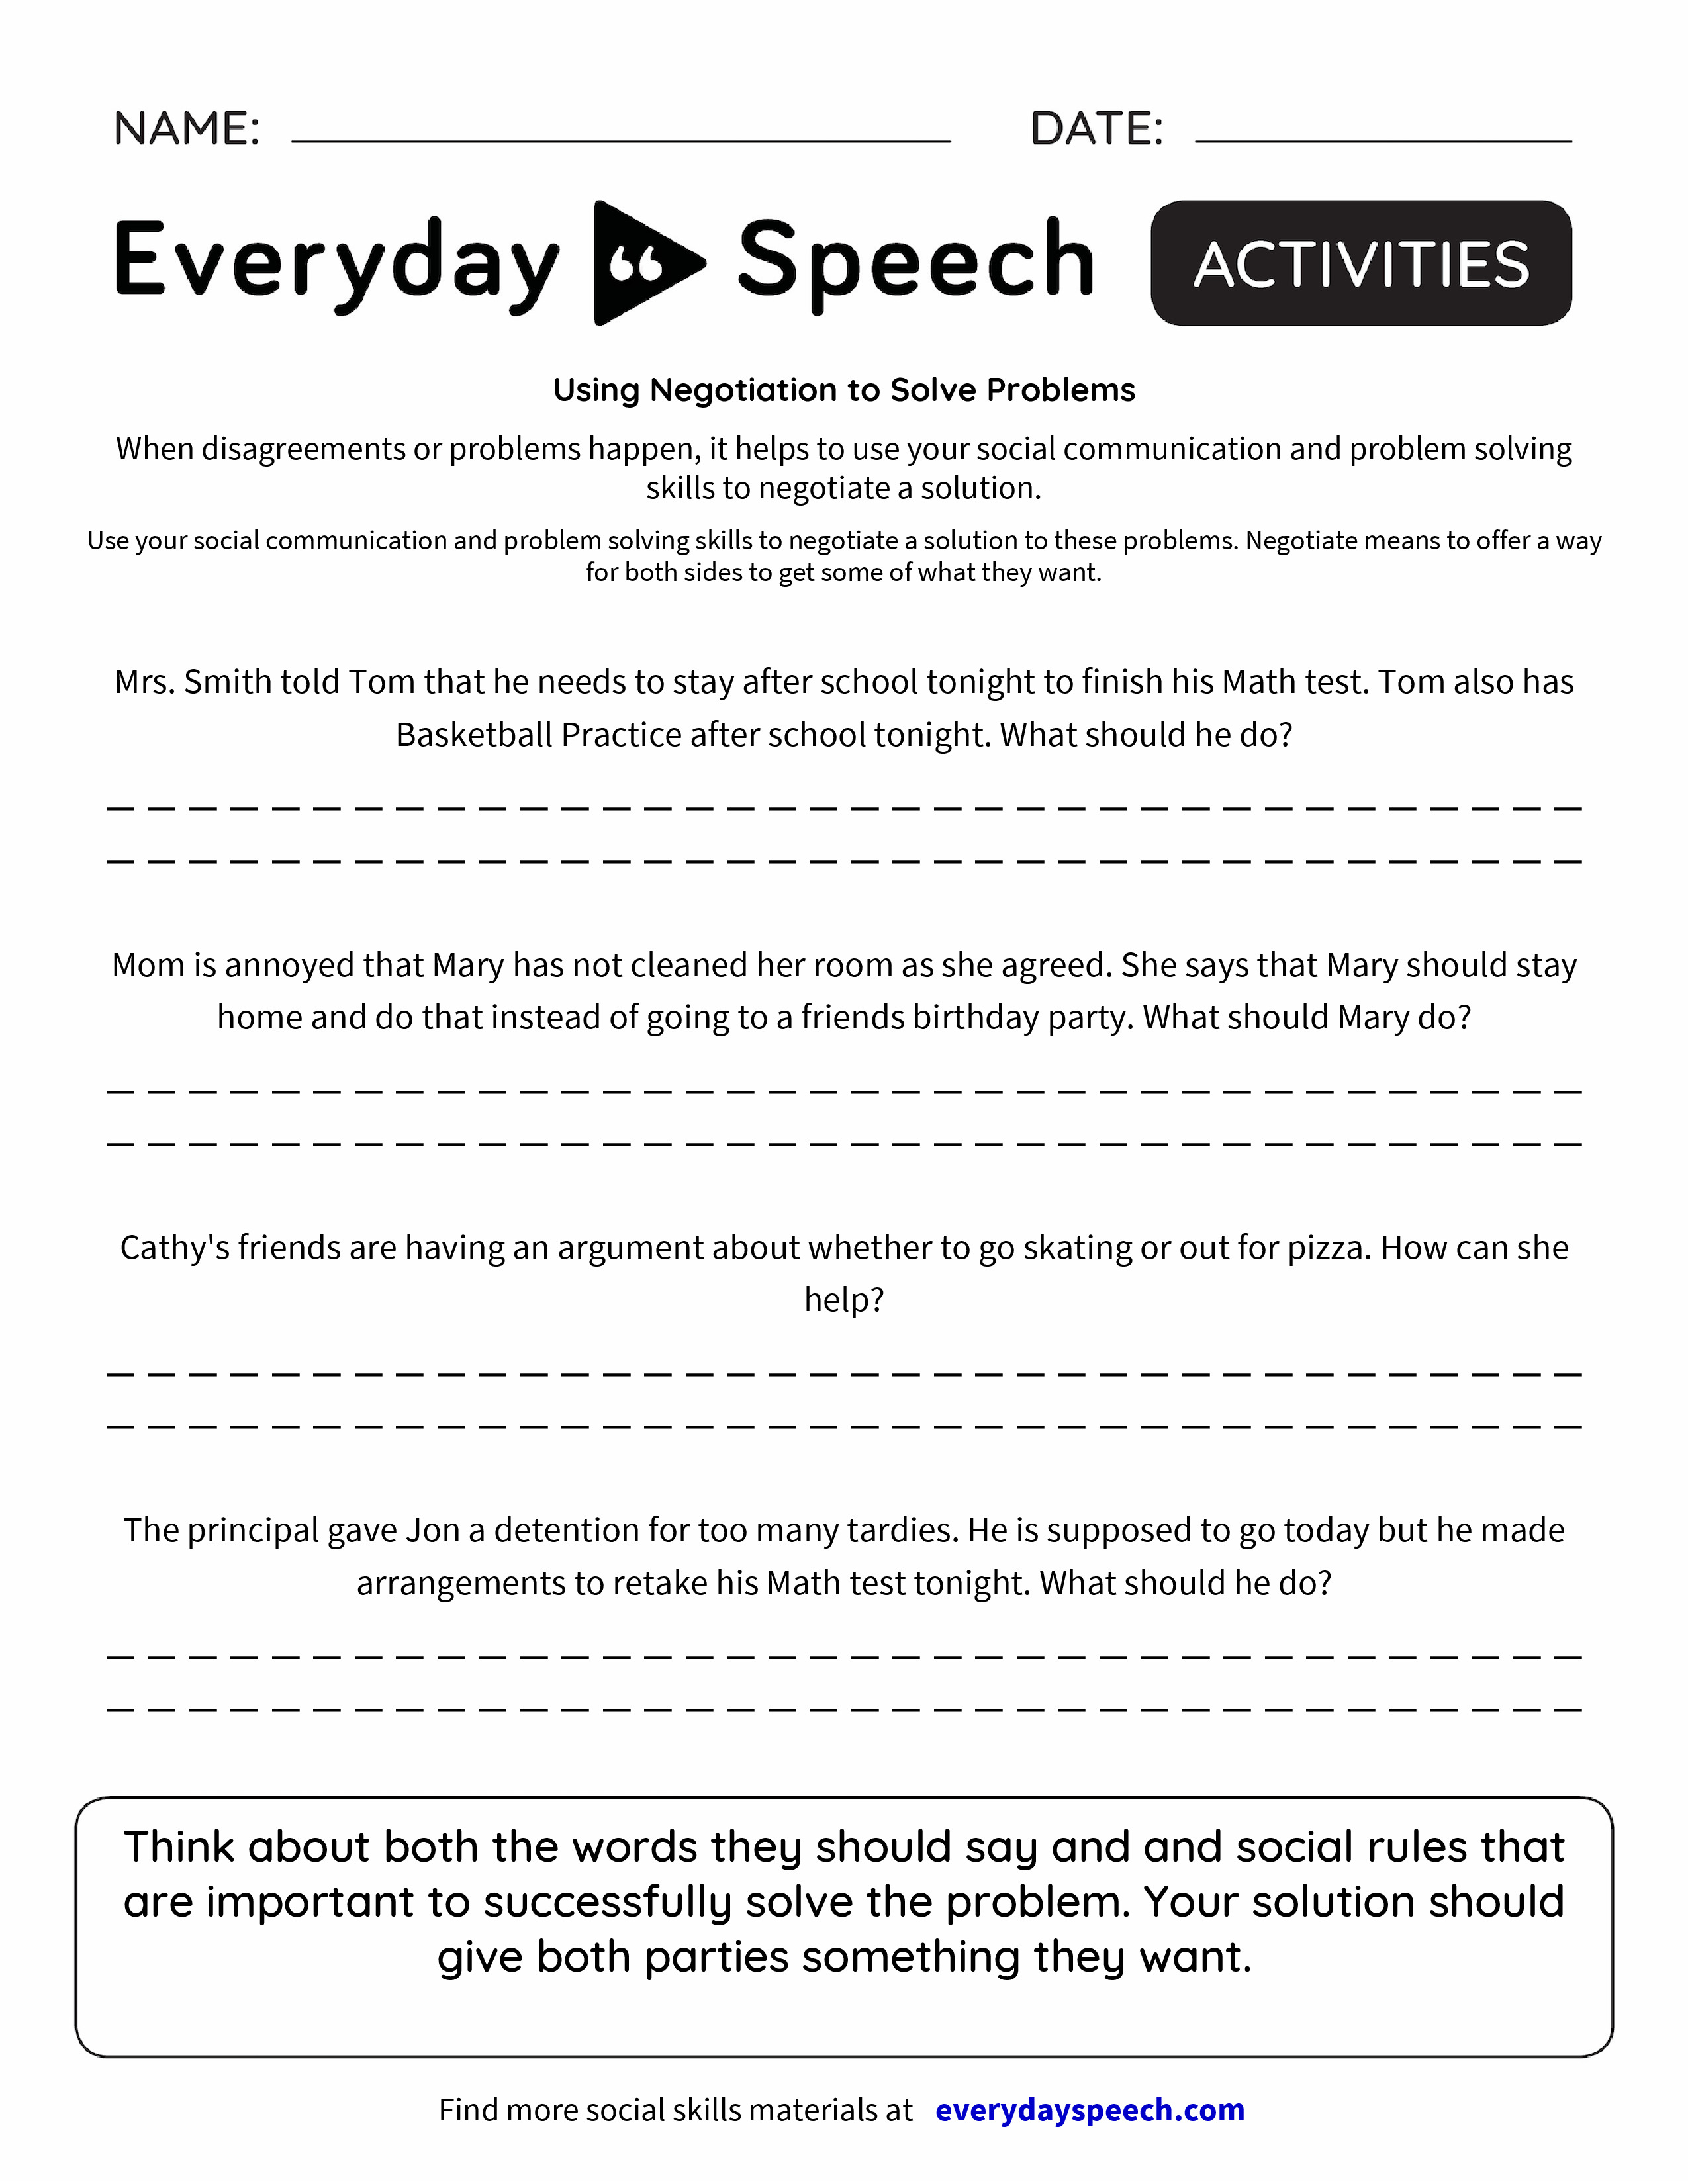 worksheet Wants Vs Needs Worksheet using negotiation to solve problems everyday speech preview